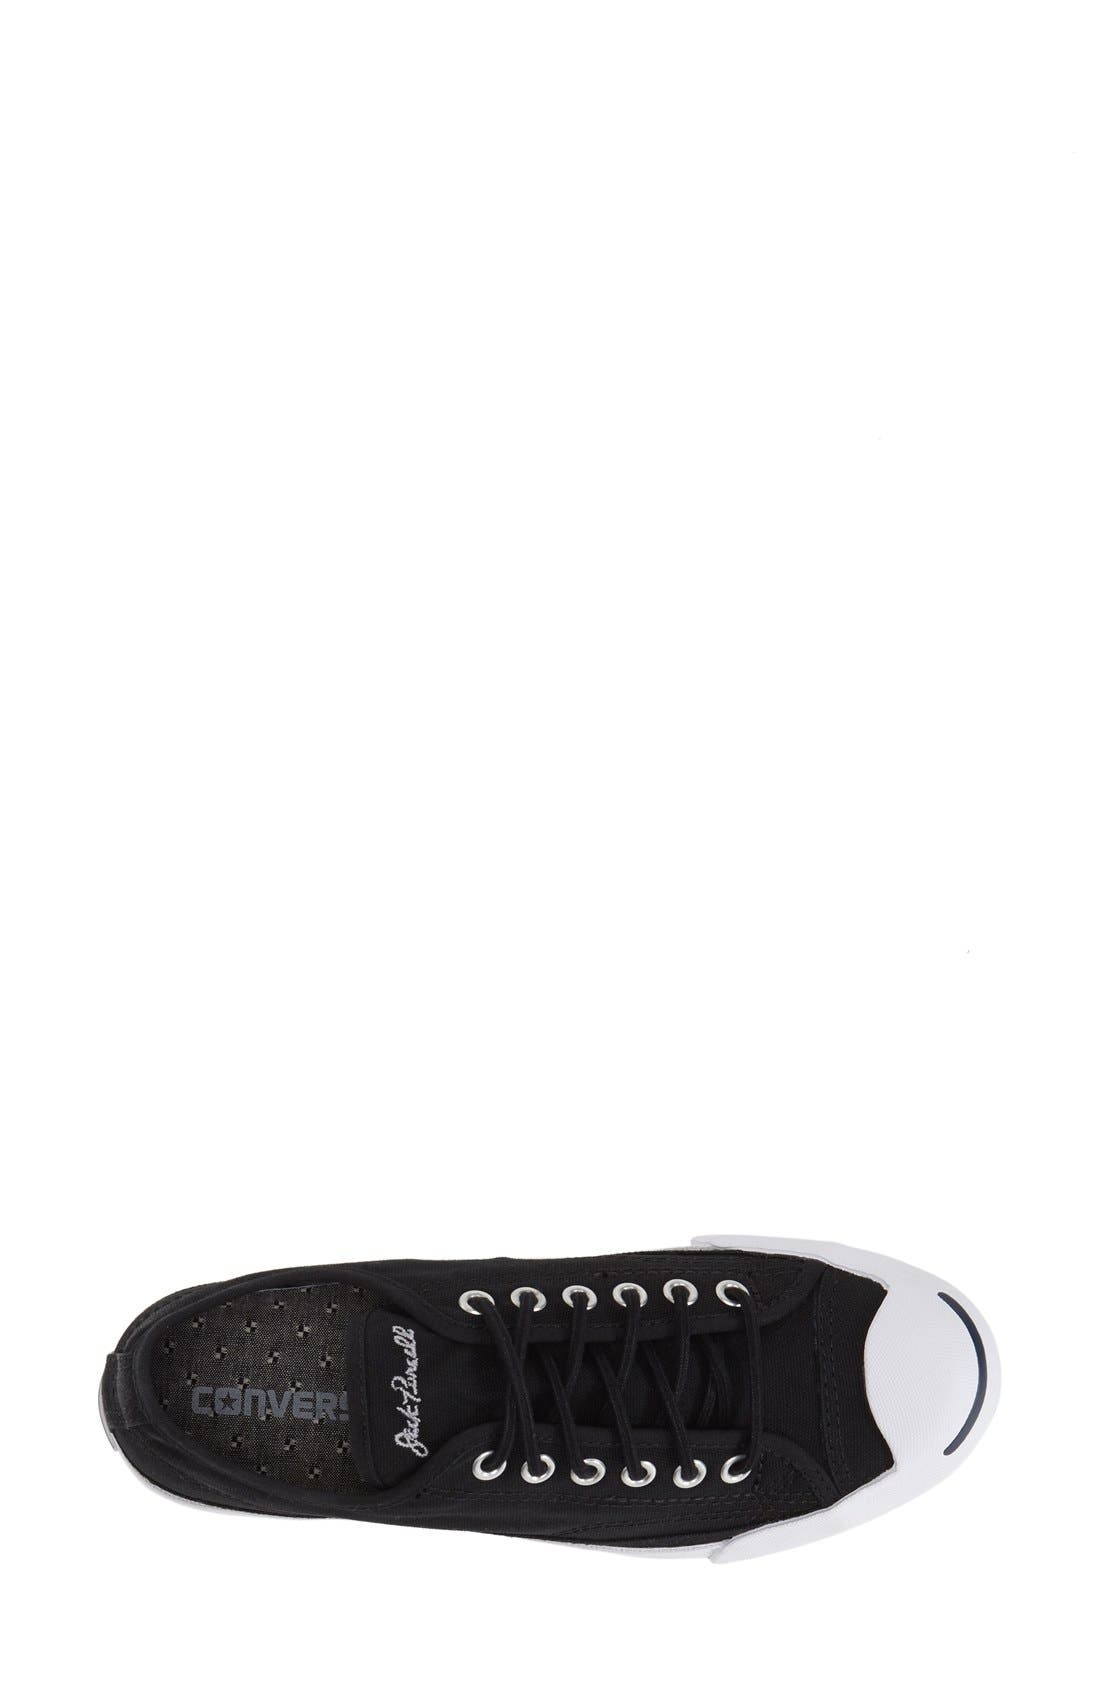 'Jack Purcell' Low Top Slip On Sneaker,                             Alternate thumbnail 4, color,